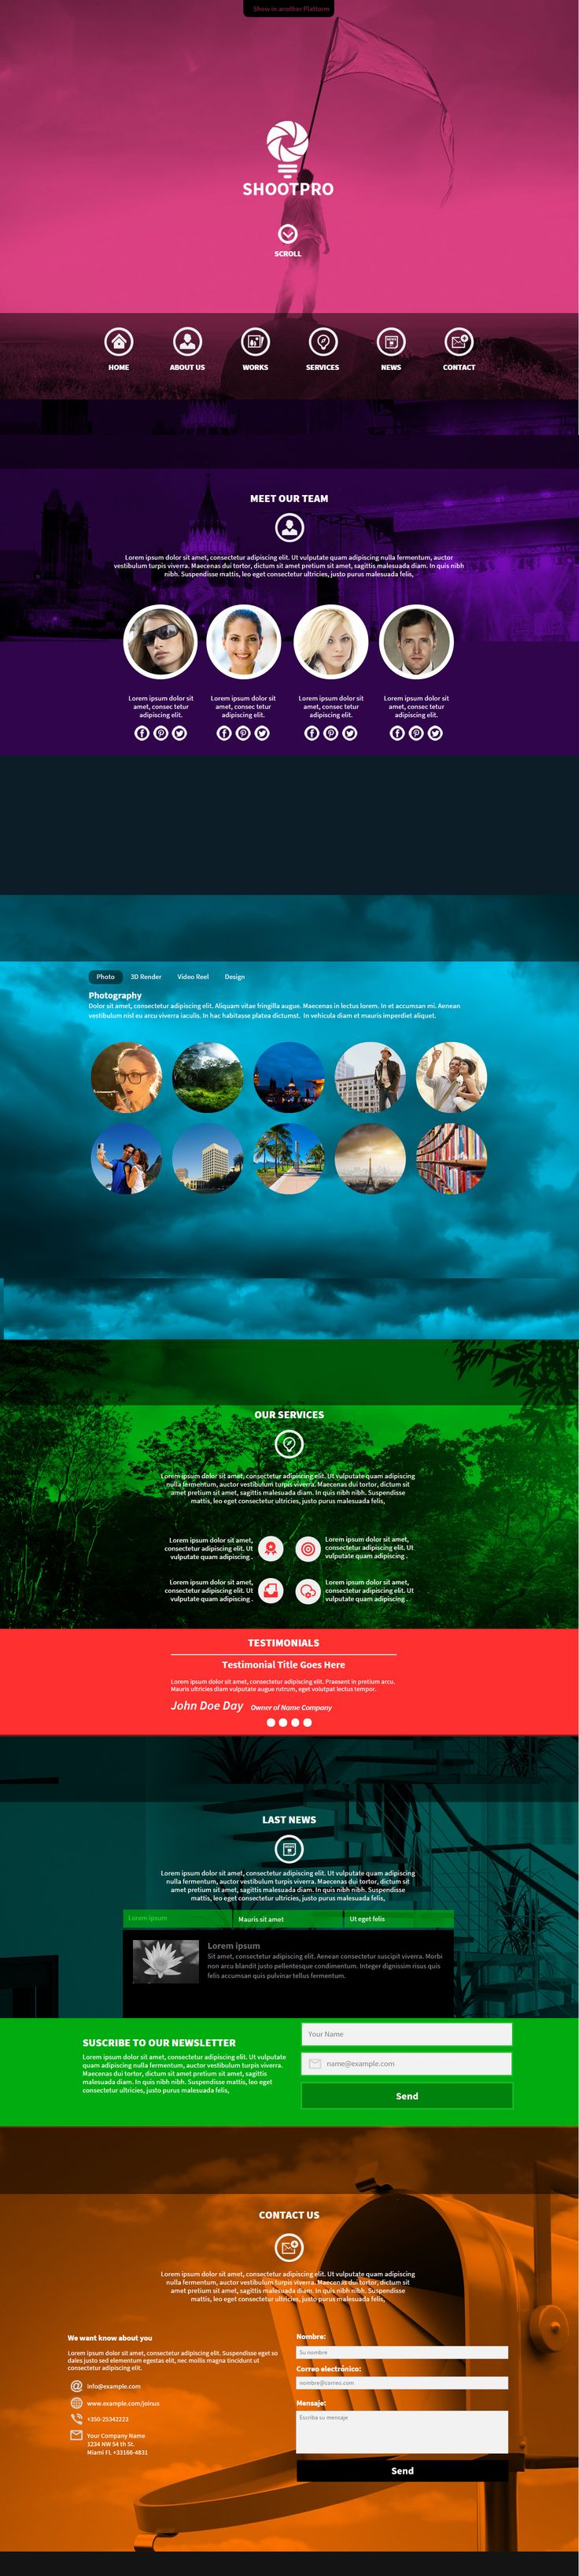 Shootpro is Premium Muse Portfolio Template. Parallax Scrolling. One Page. Logo include. Webkit Fonts. Contact Form. http://www.responsivemiracle.com/cms/shootpro-premium-muse-template/